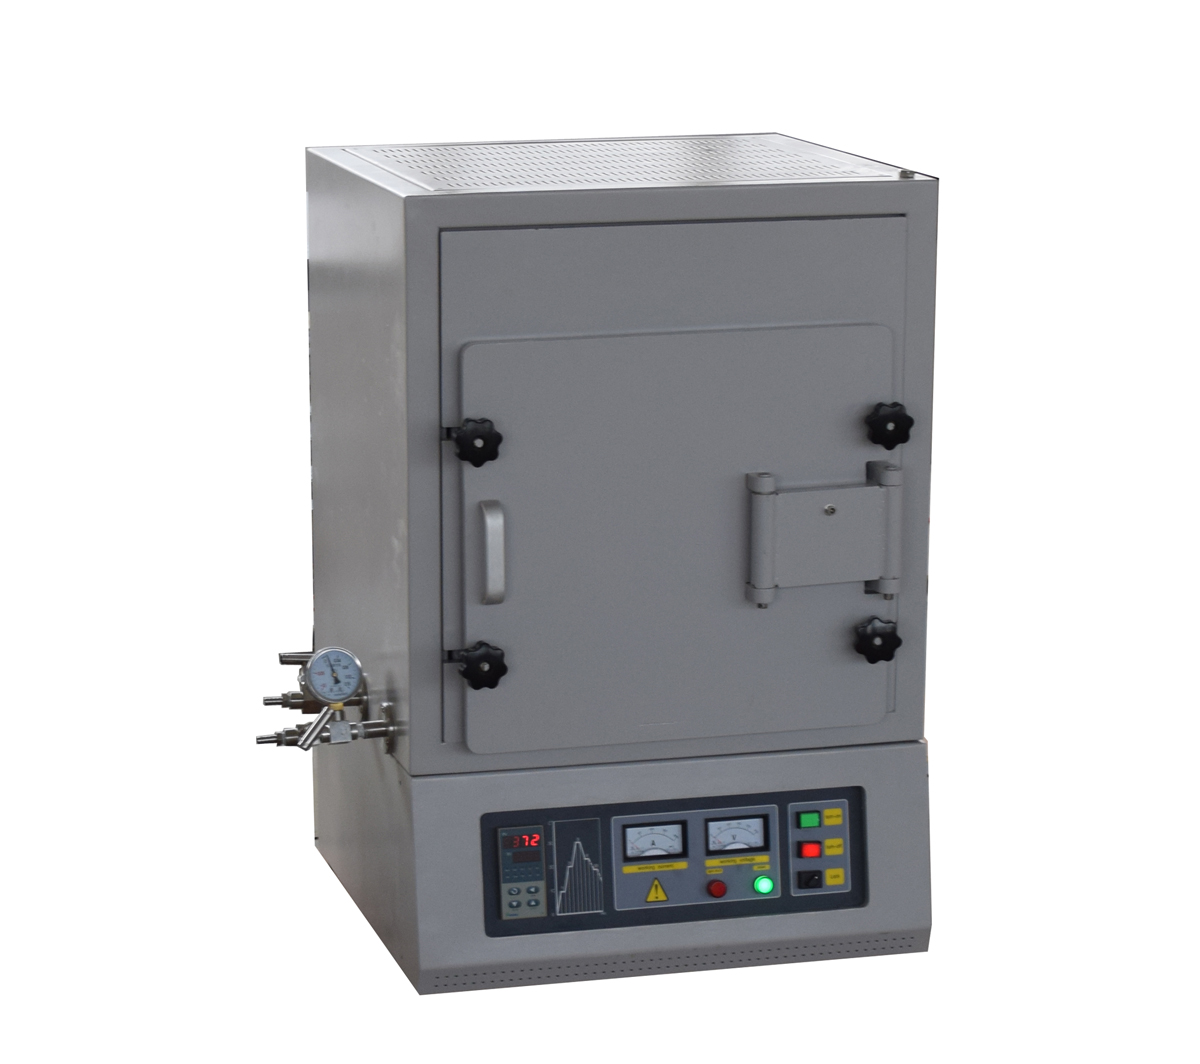 Compact 1600℃ atmosphere muffle furnace with water cooling system CY-A1600-3IC